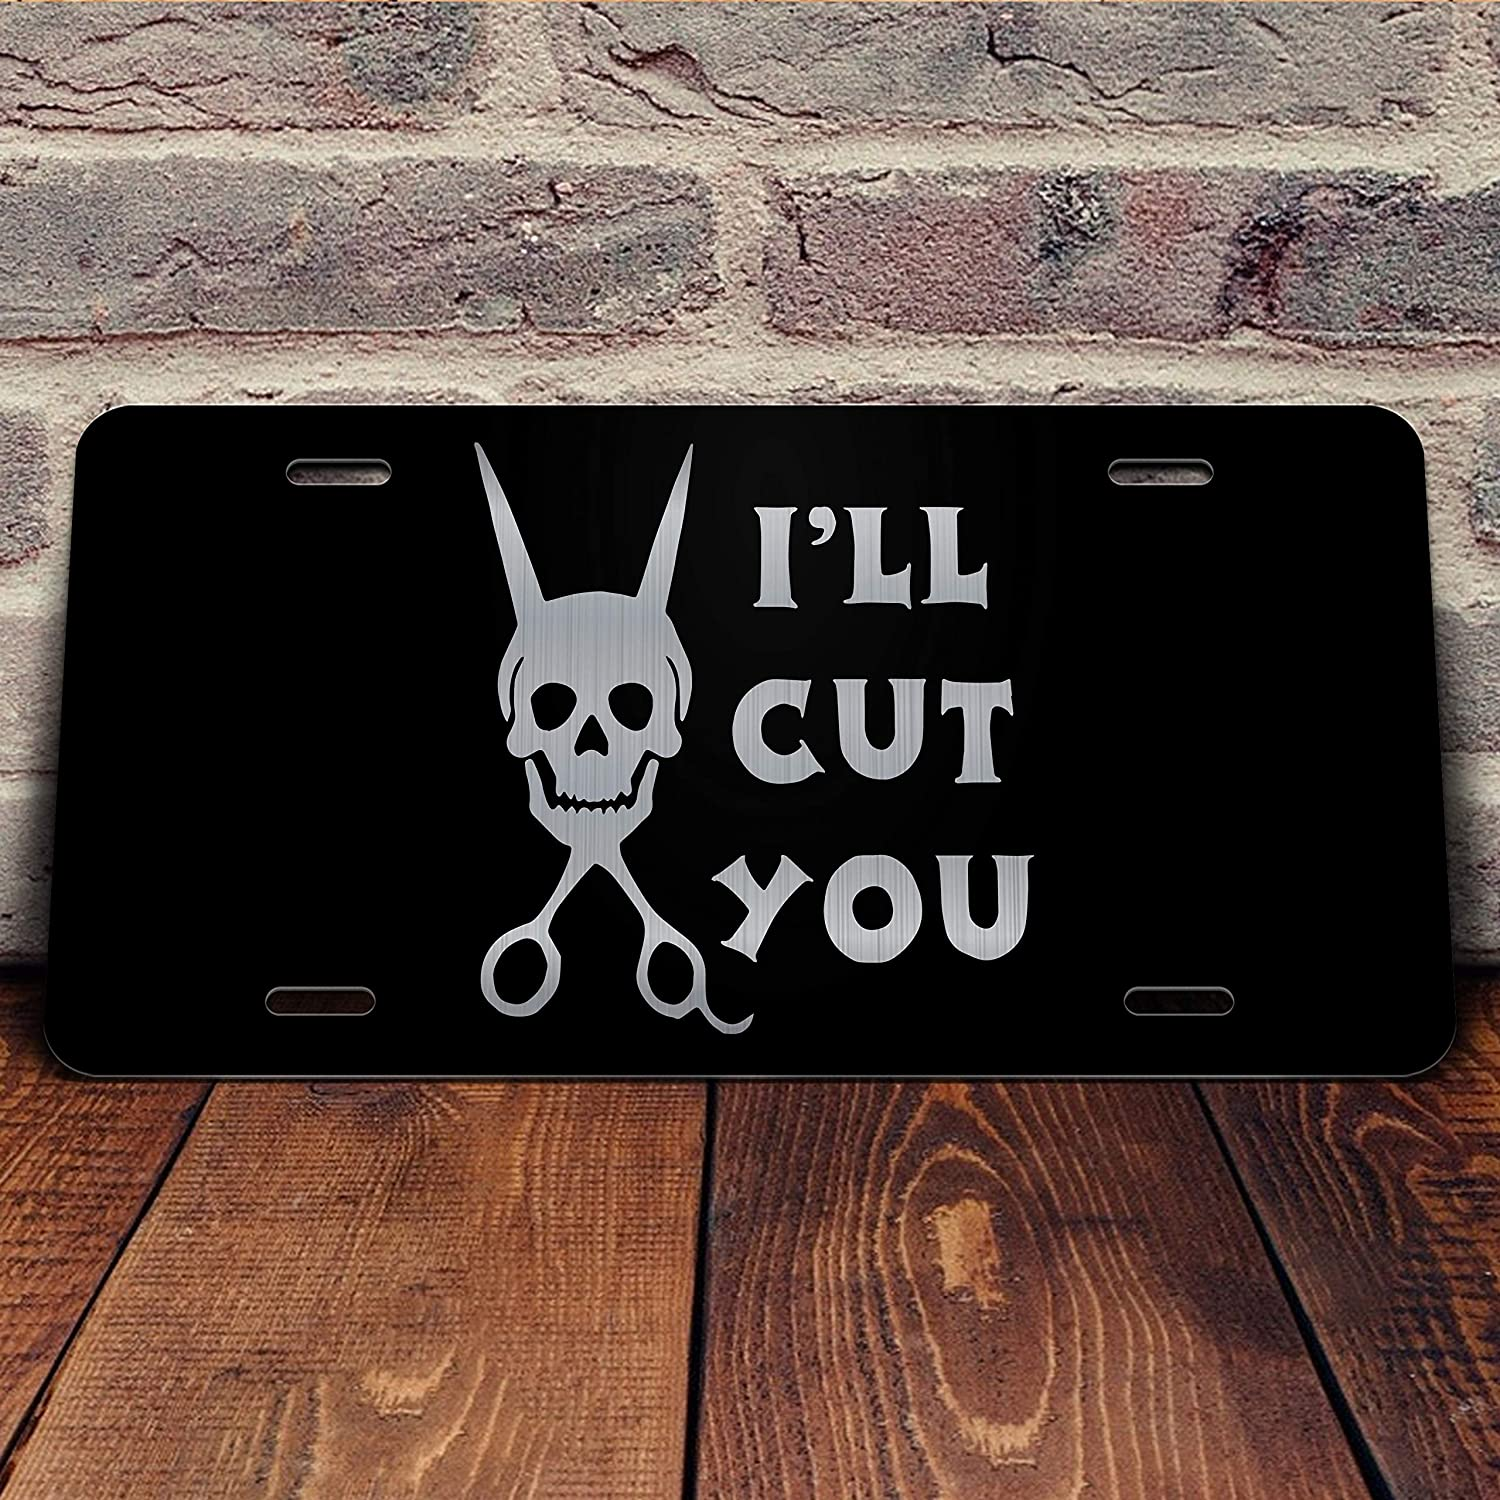 Ill Cut You Cosmetology Hairstylist Vanity Front License Plate Tag KCE088